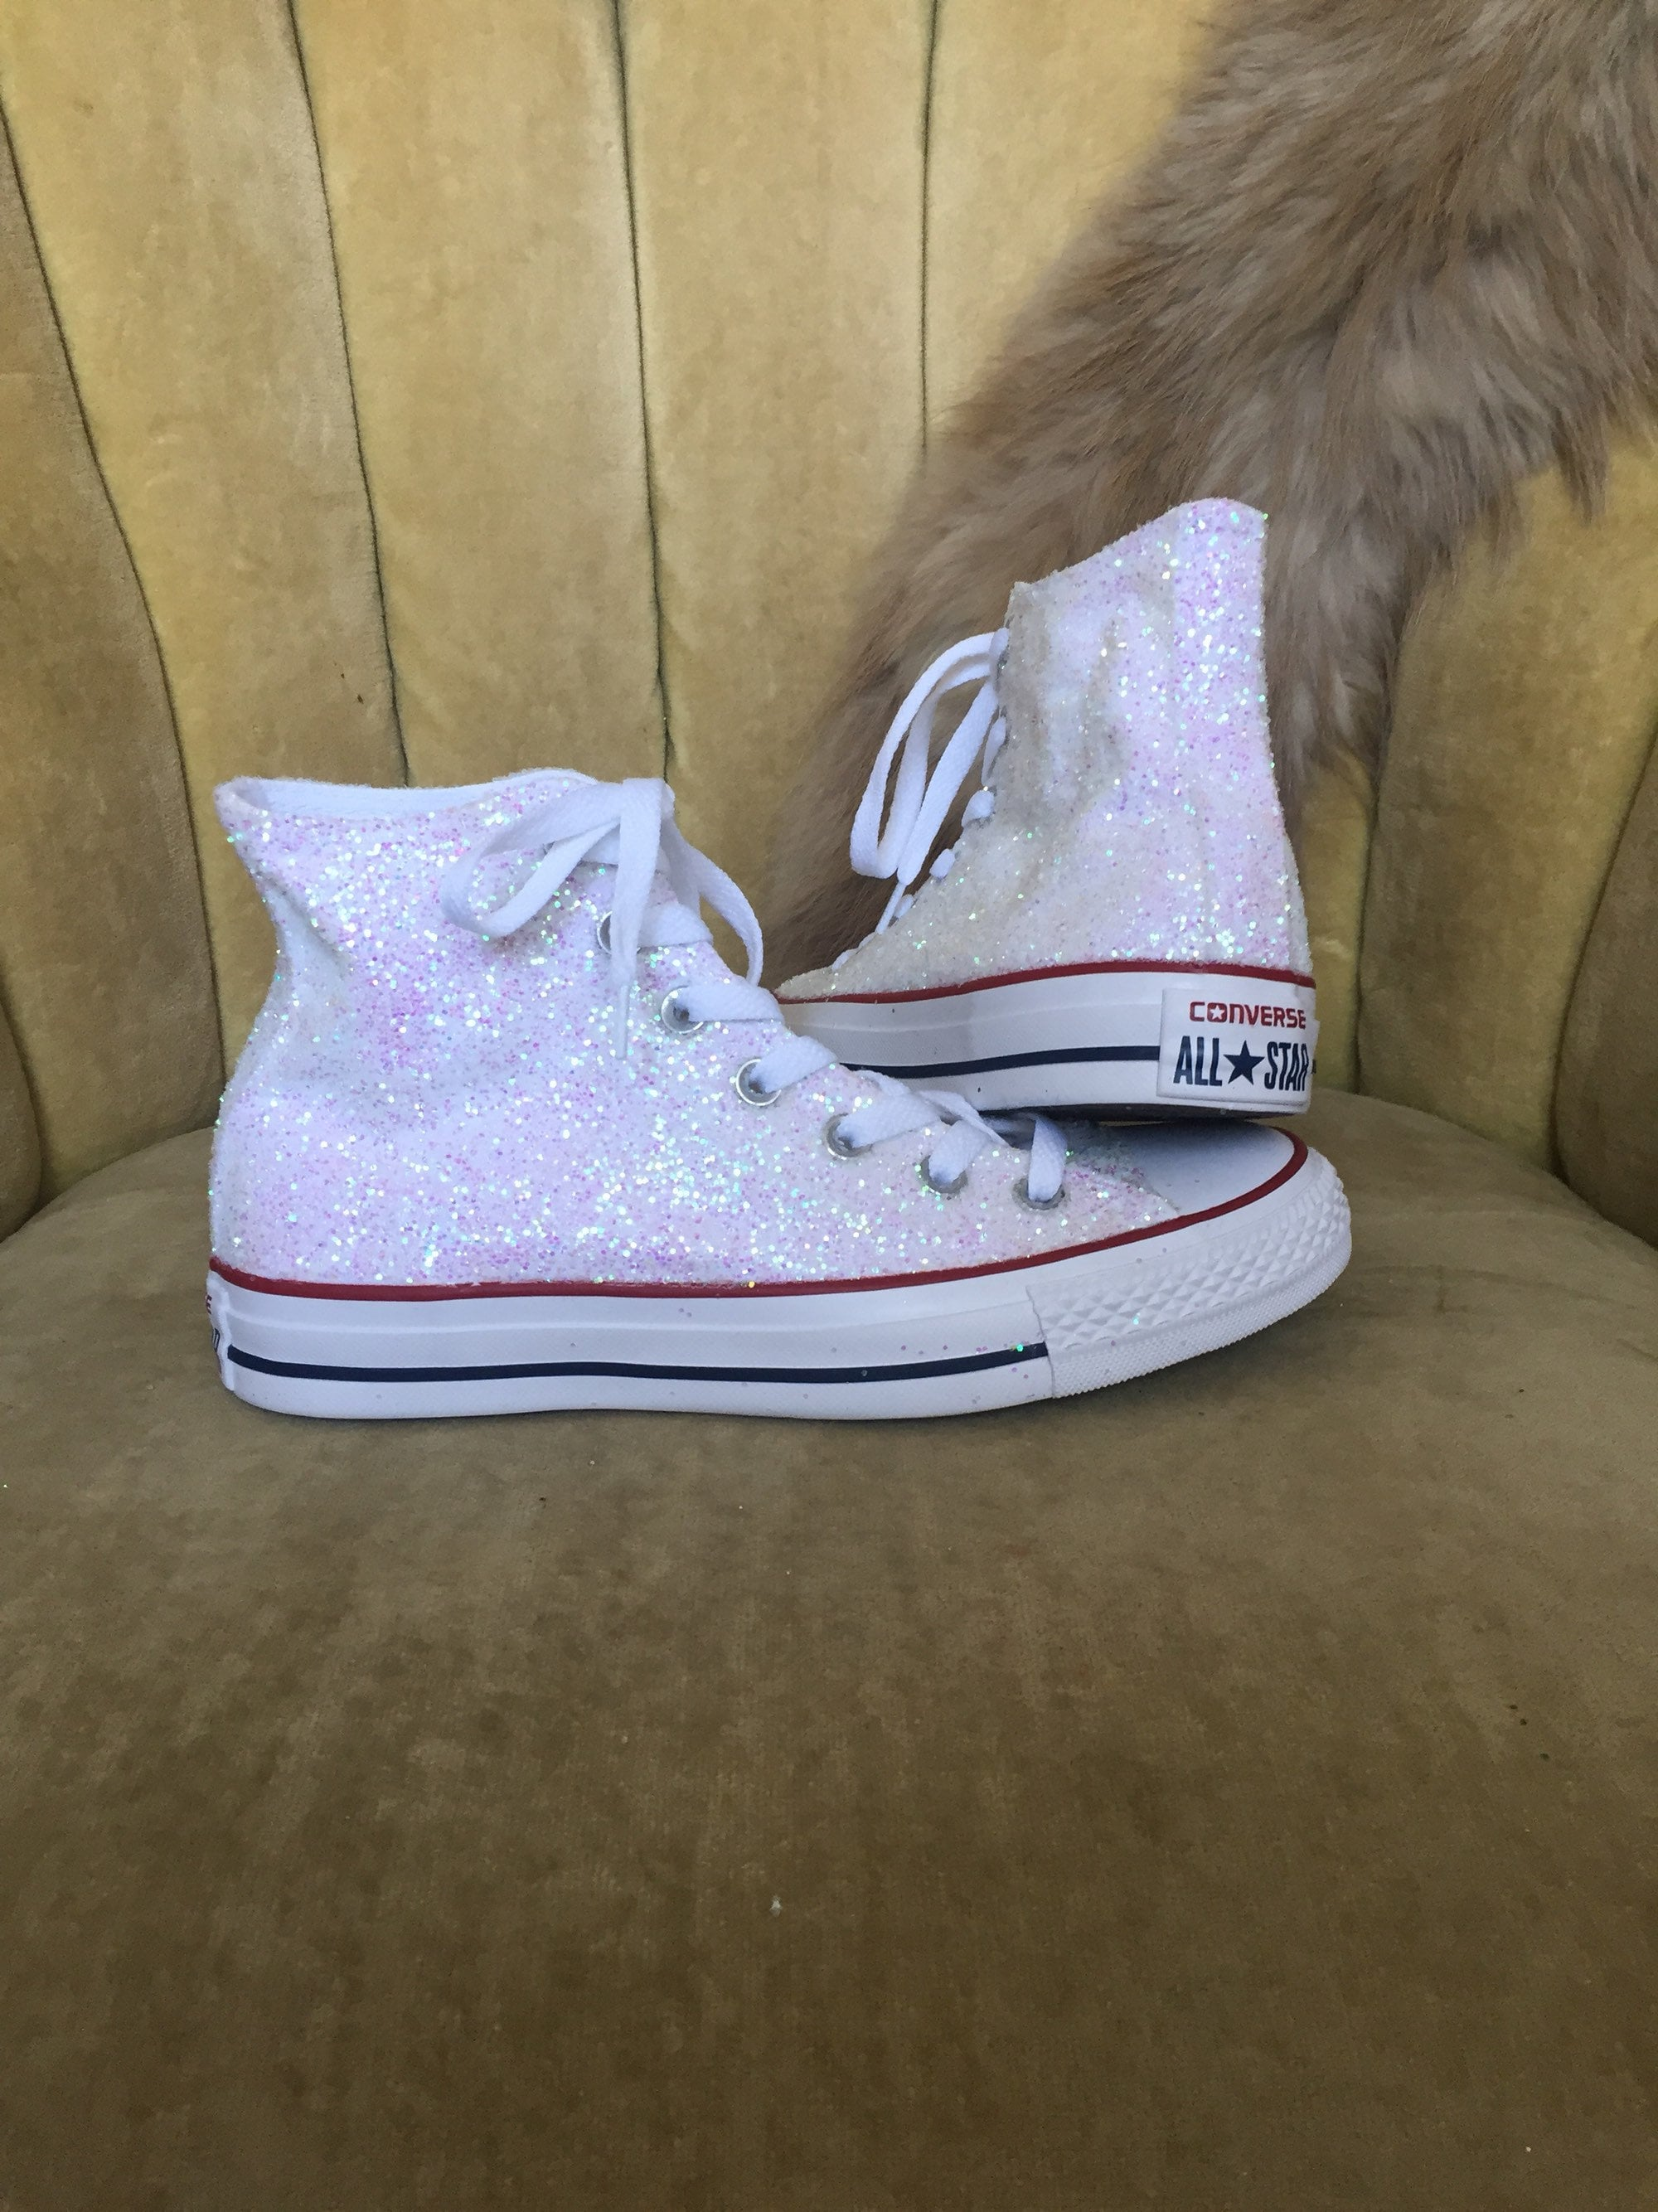 22c96f366eaf ... hi womens trainers db483 00aa5; where can i buy authentic converse all  star in white glitter. custom made to etsy